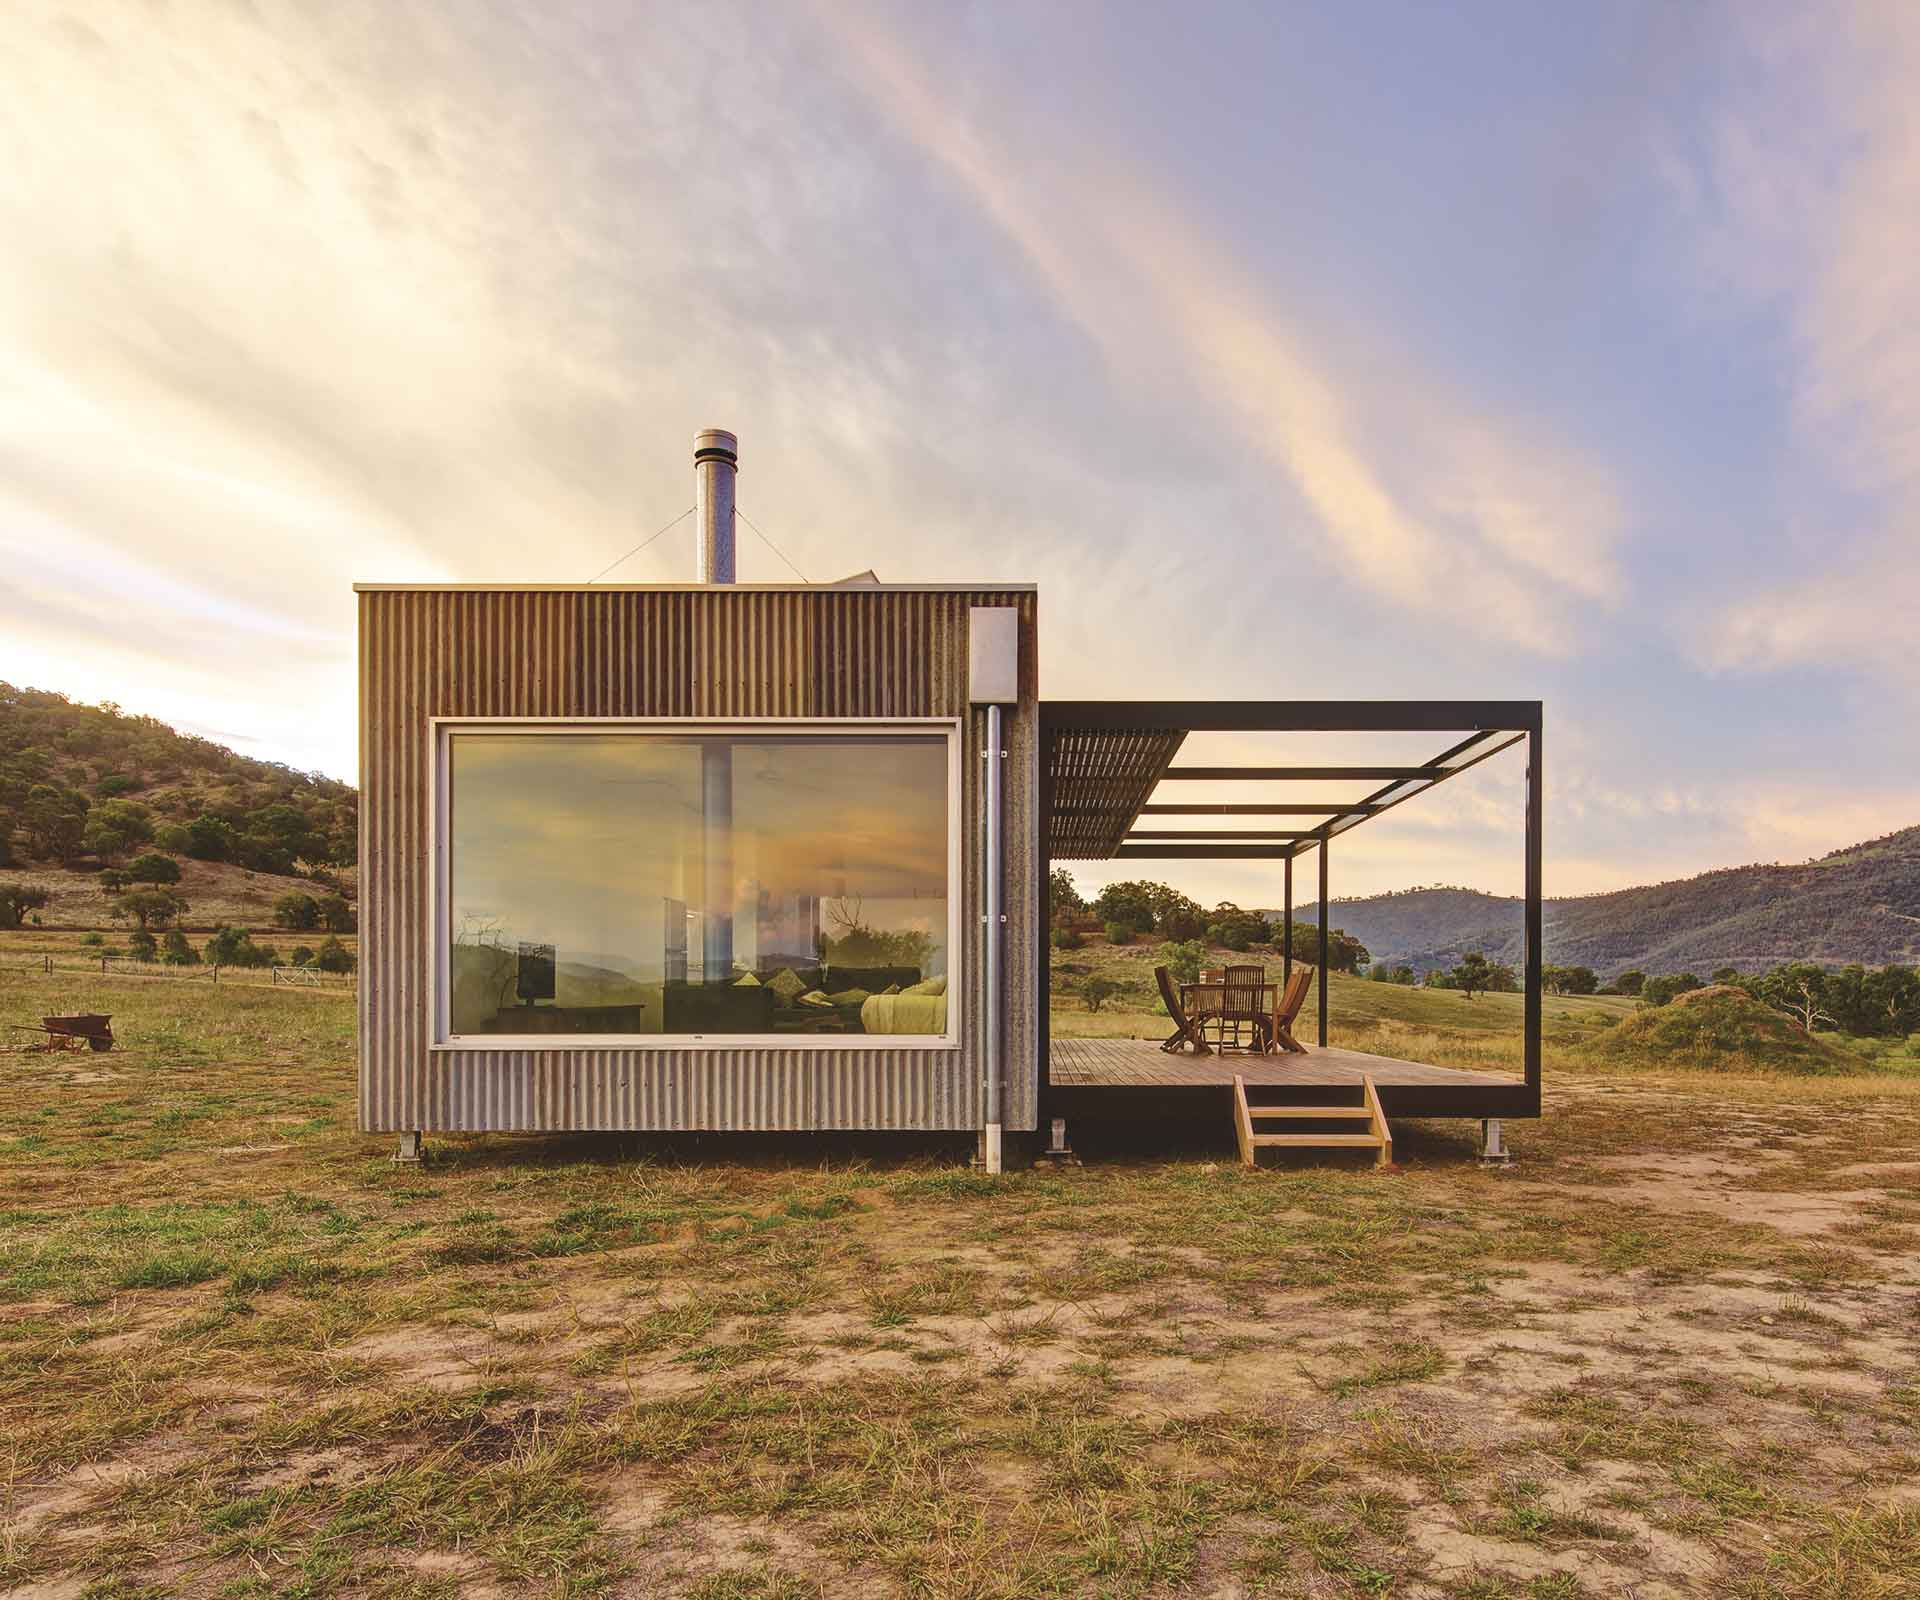 Tiny Houses Australia: The best ones, and what to know